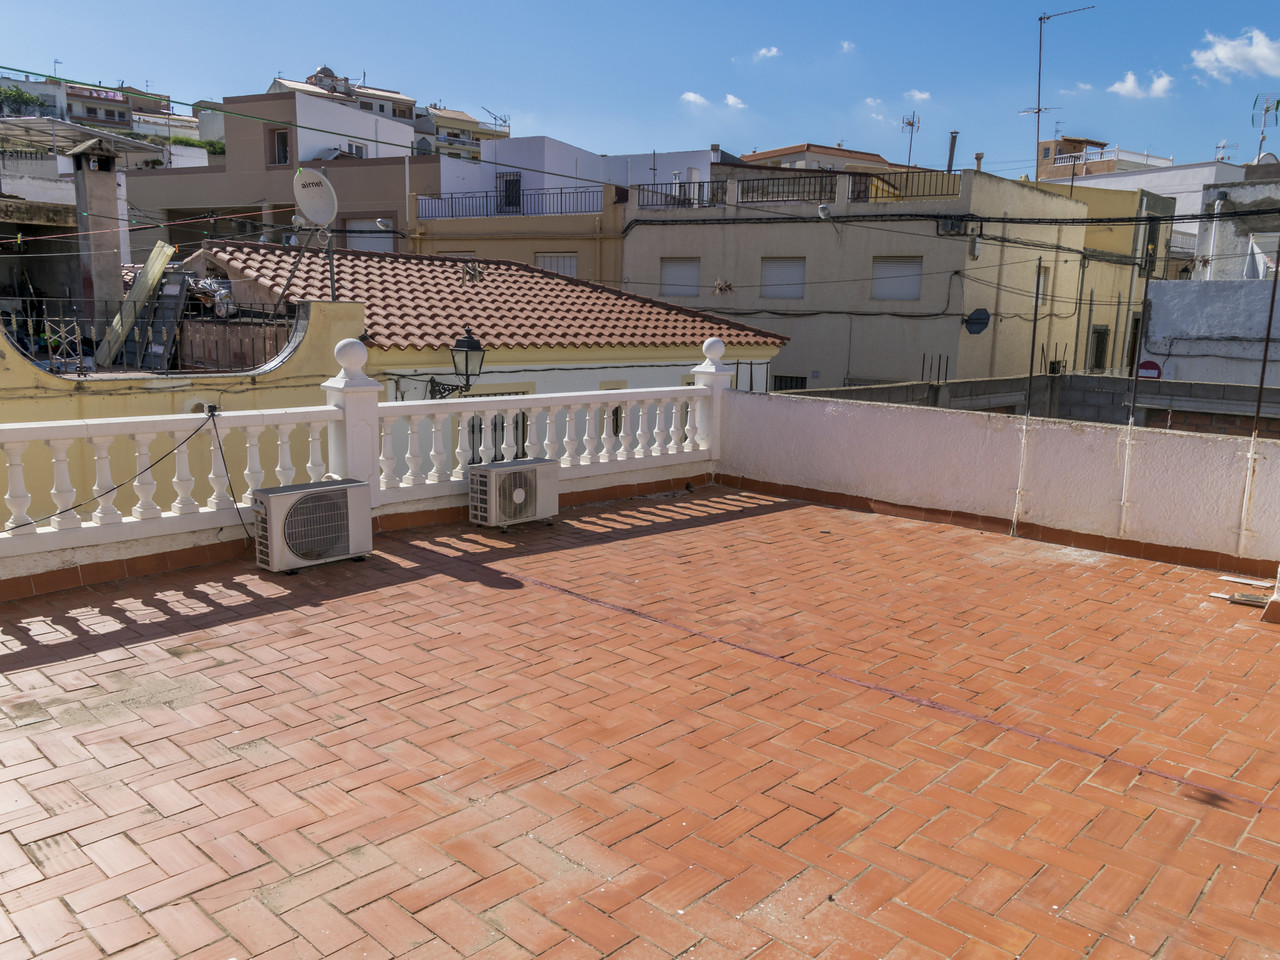 Propery For Sale in Turre, Spain image 15